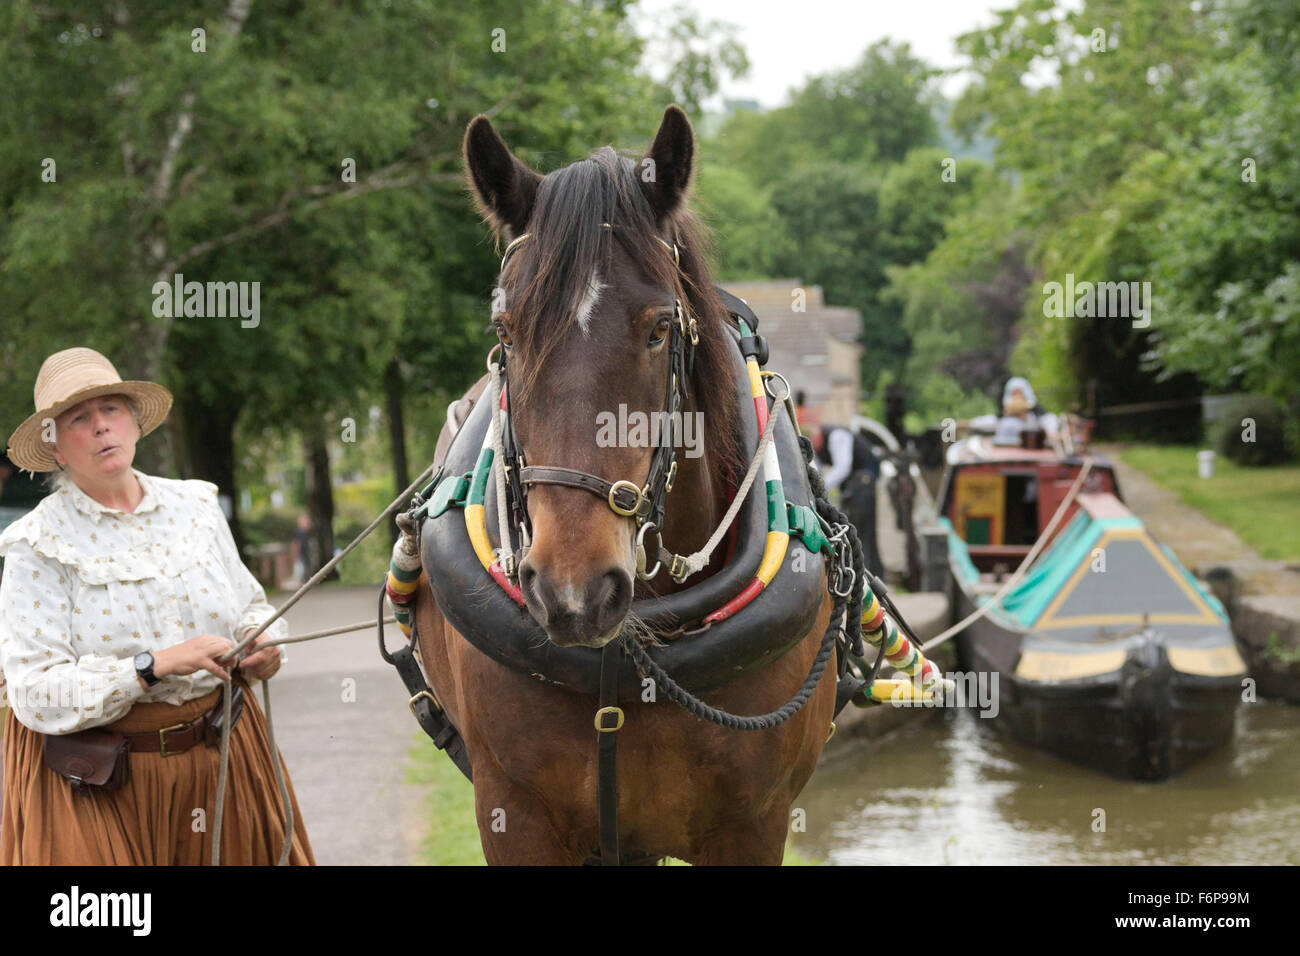 Boat Tow Stock Photos Images Alamy Harness Horse Canal England English Victorian Image